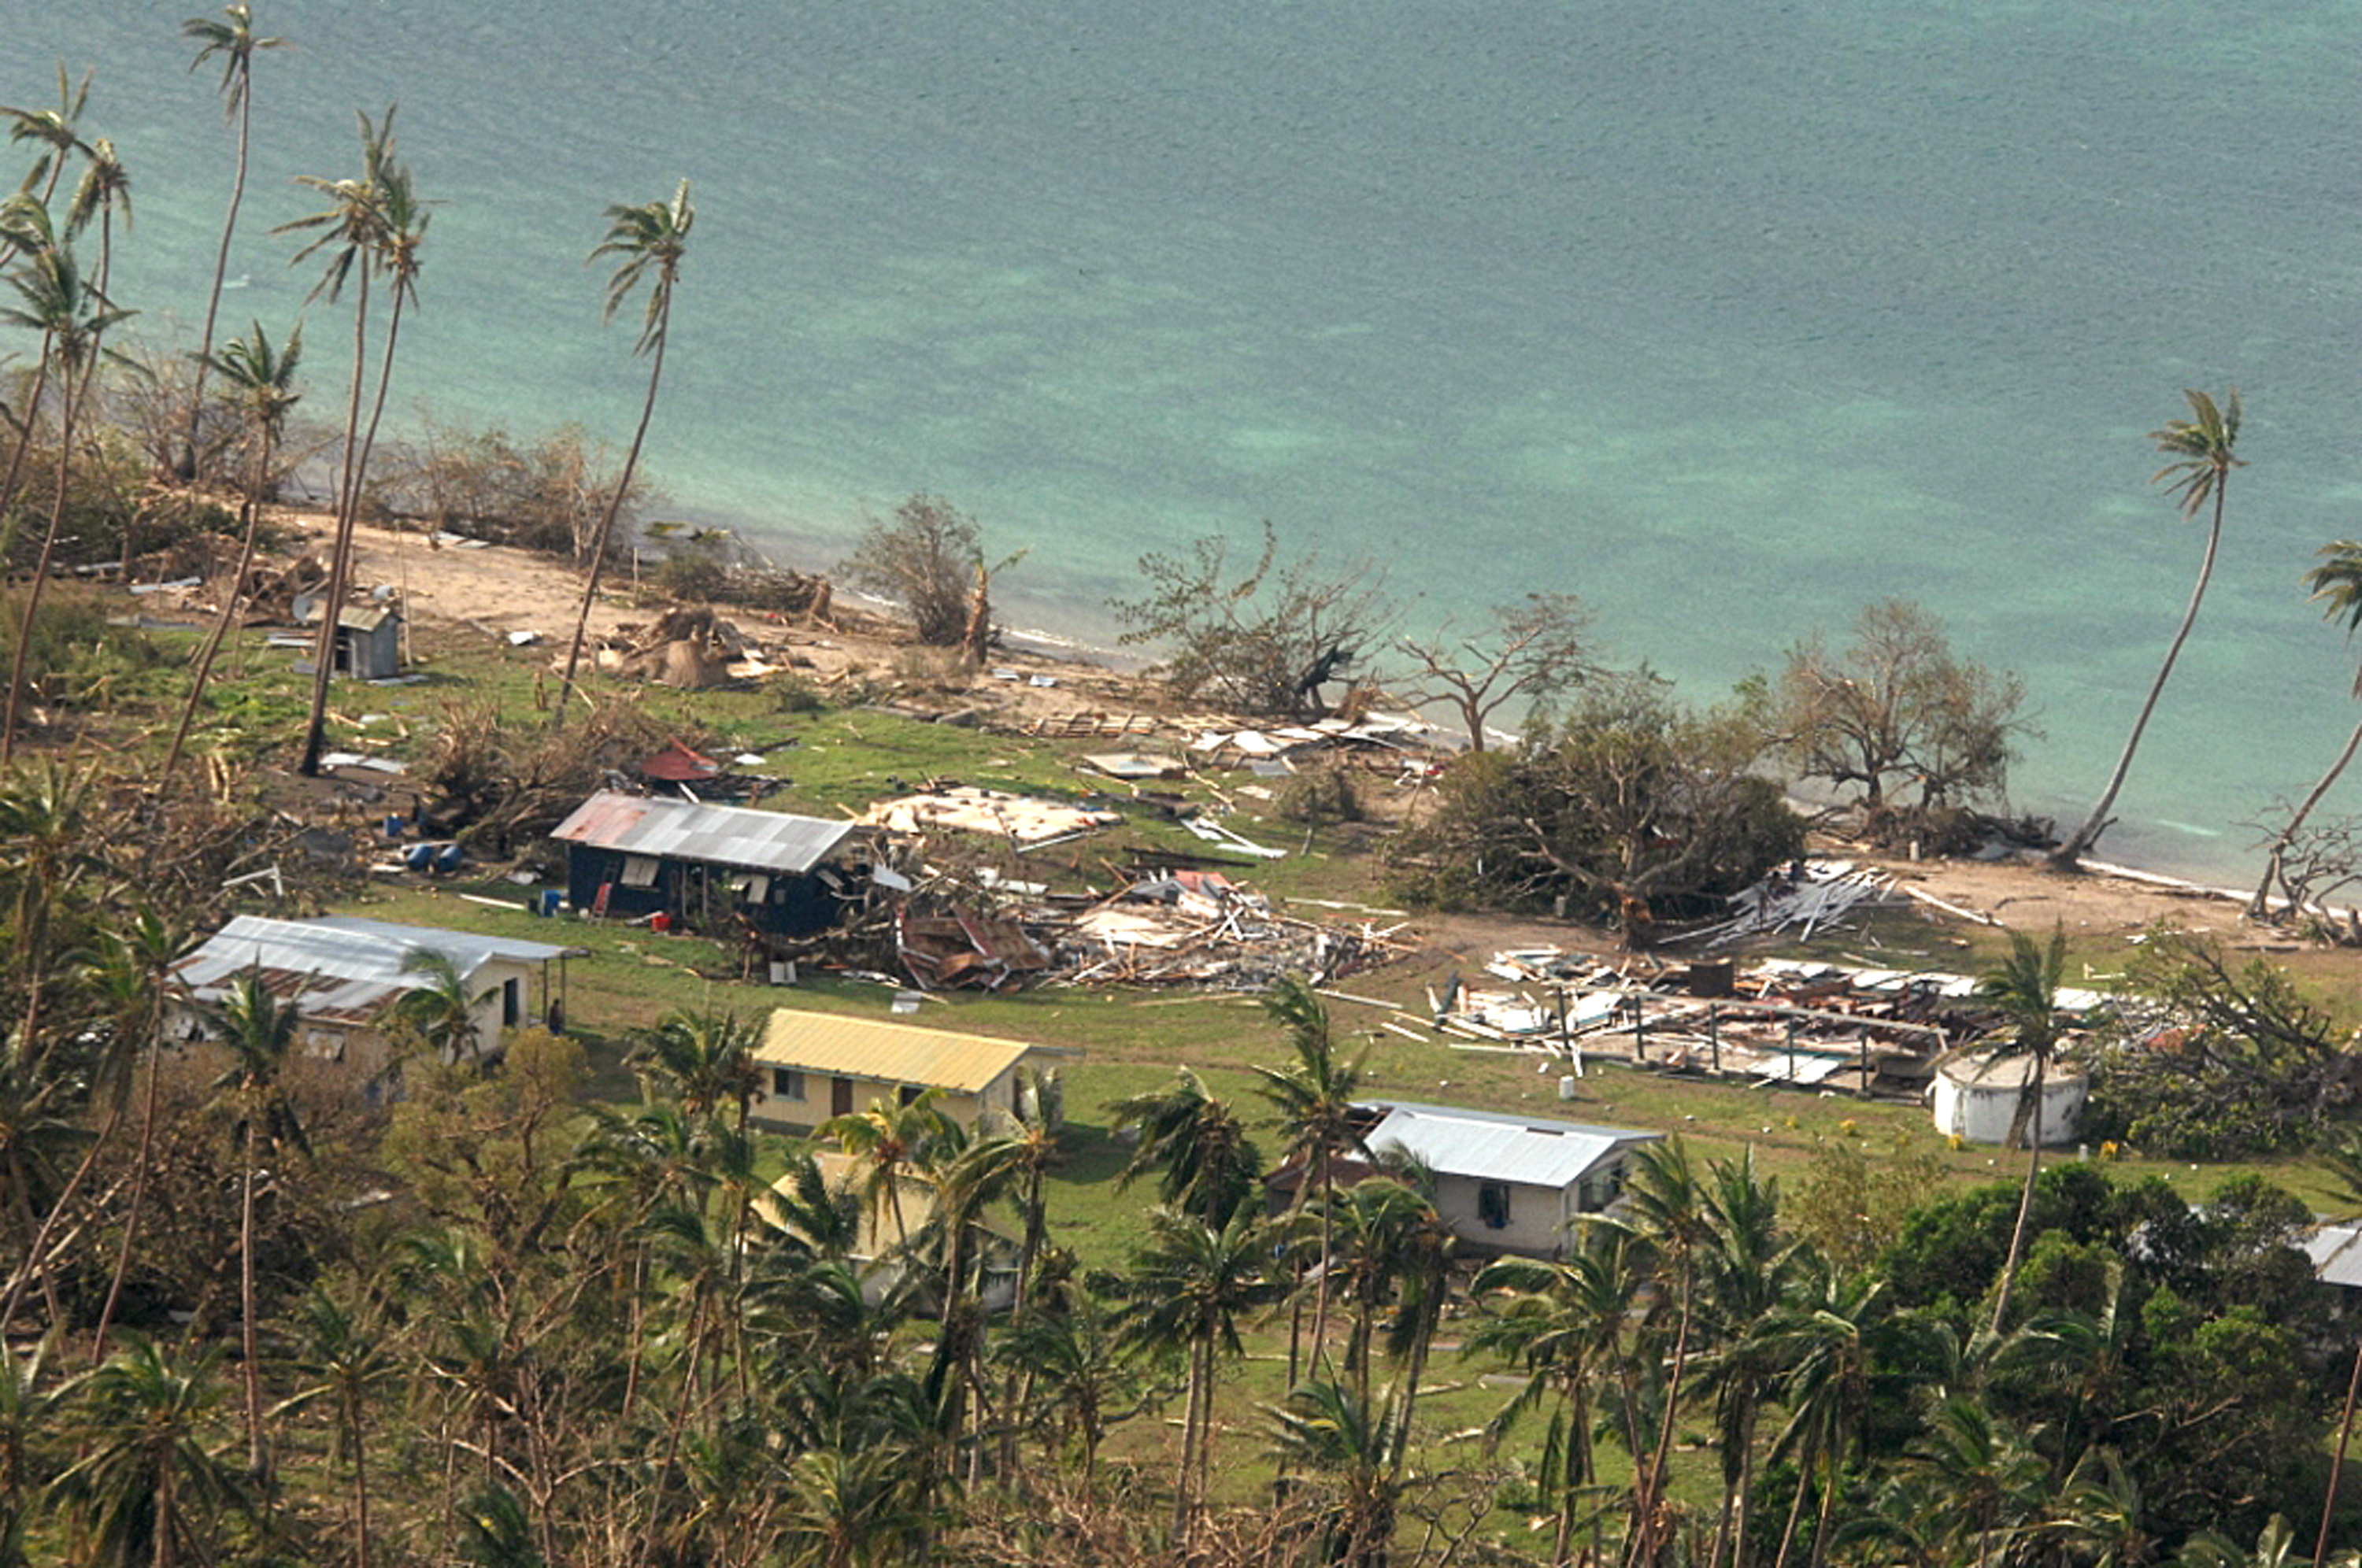 In this Sunday, Feb. 21, 2016 aerial photo supplied by the New Zealand Defense Force, debris is scattered around damaged buildings at Susui village in Fiji, after Cyclone Winston tore through the island nation.